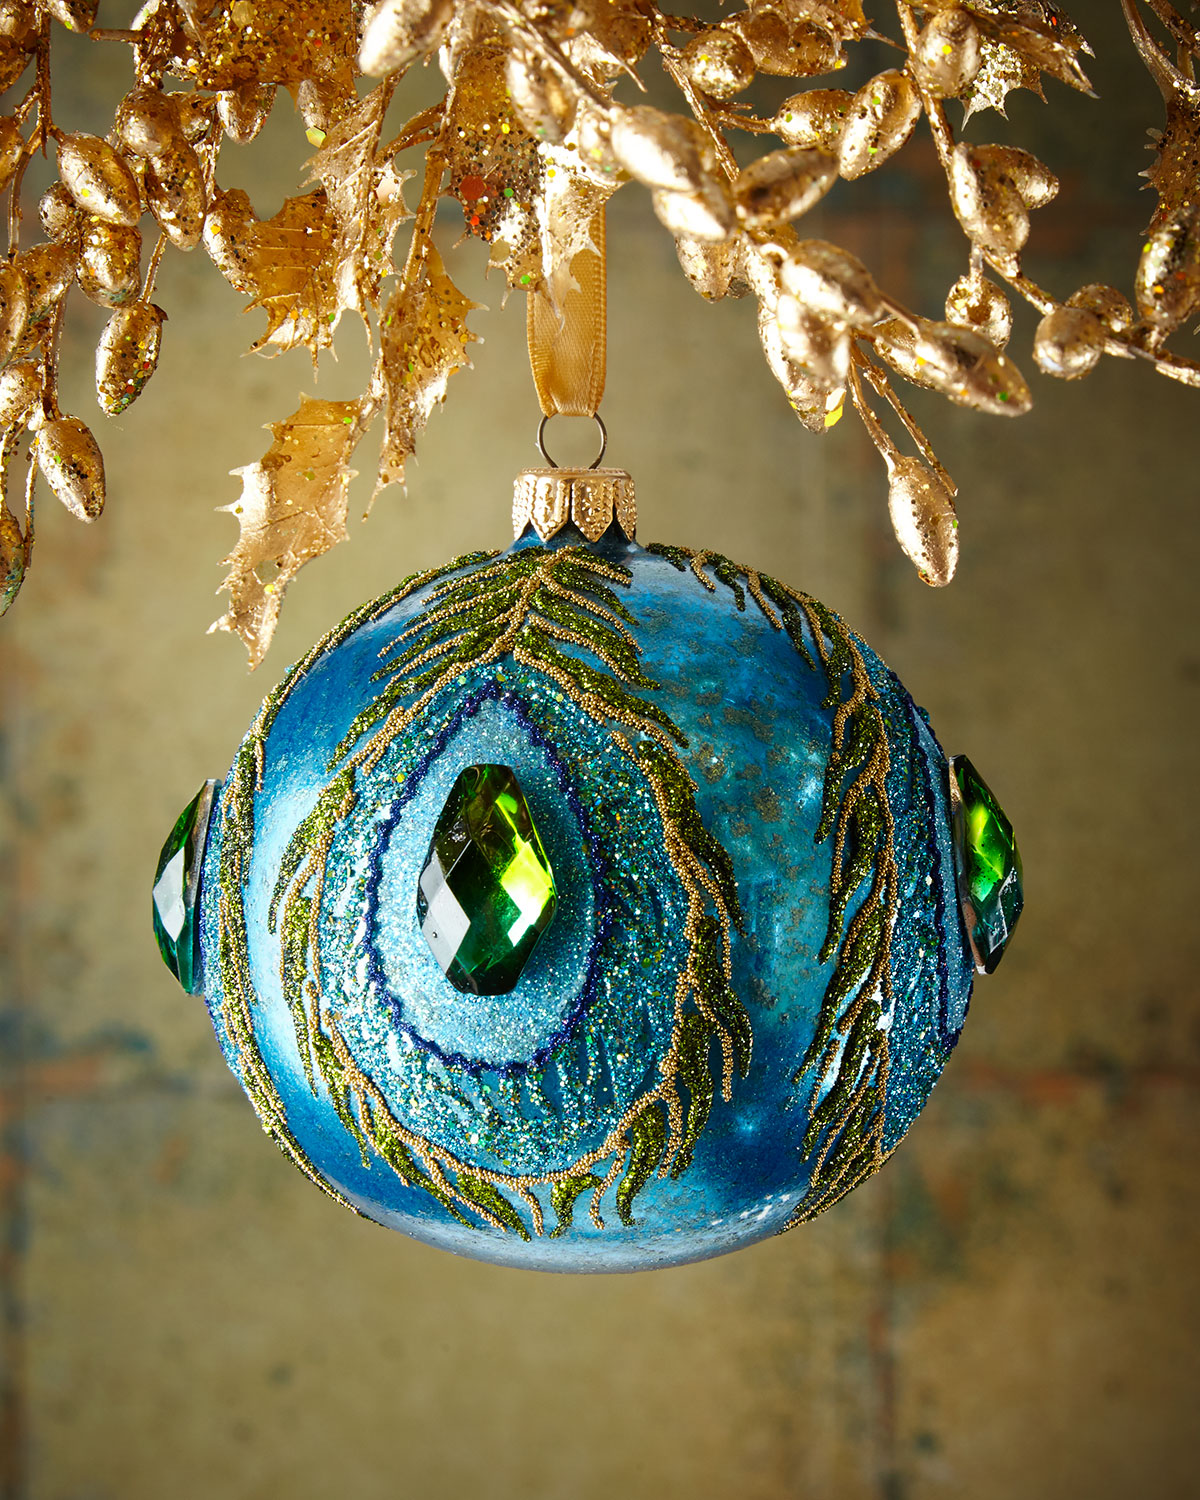 Sapphire Glassy Peacock Ball Christmas Ornament